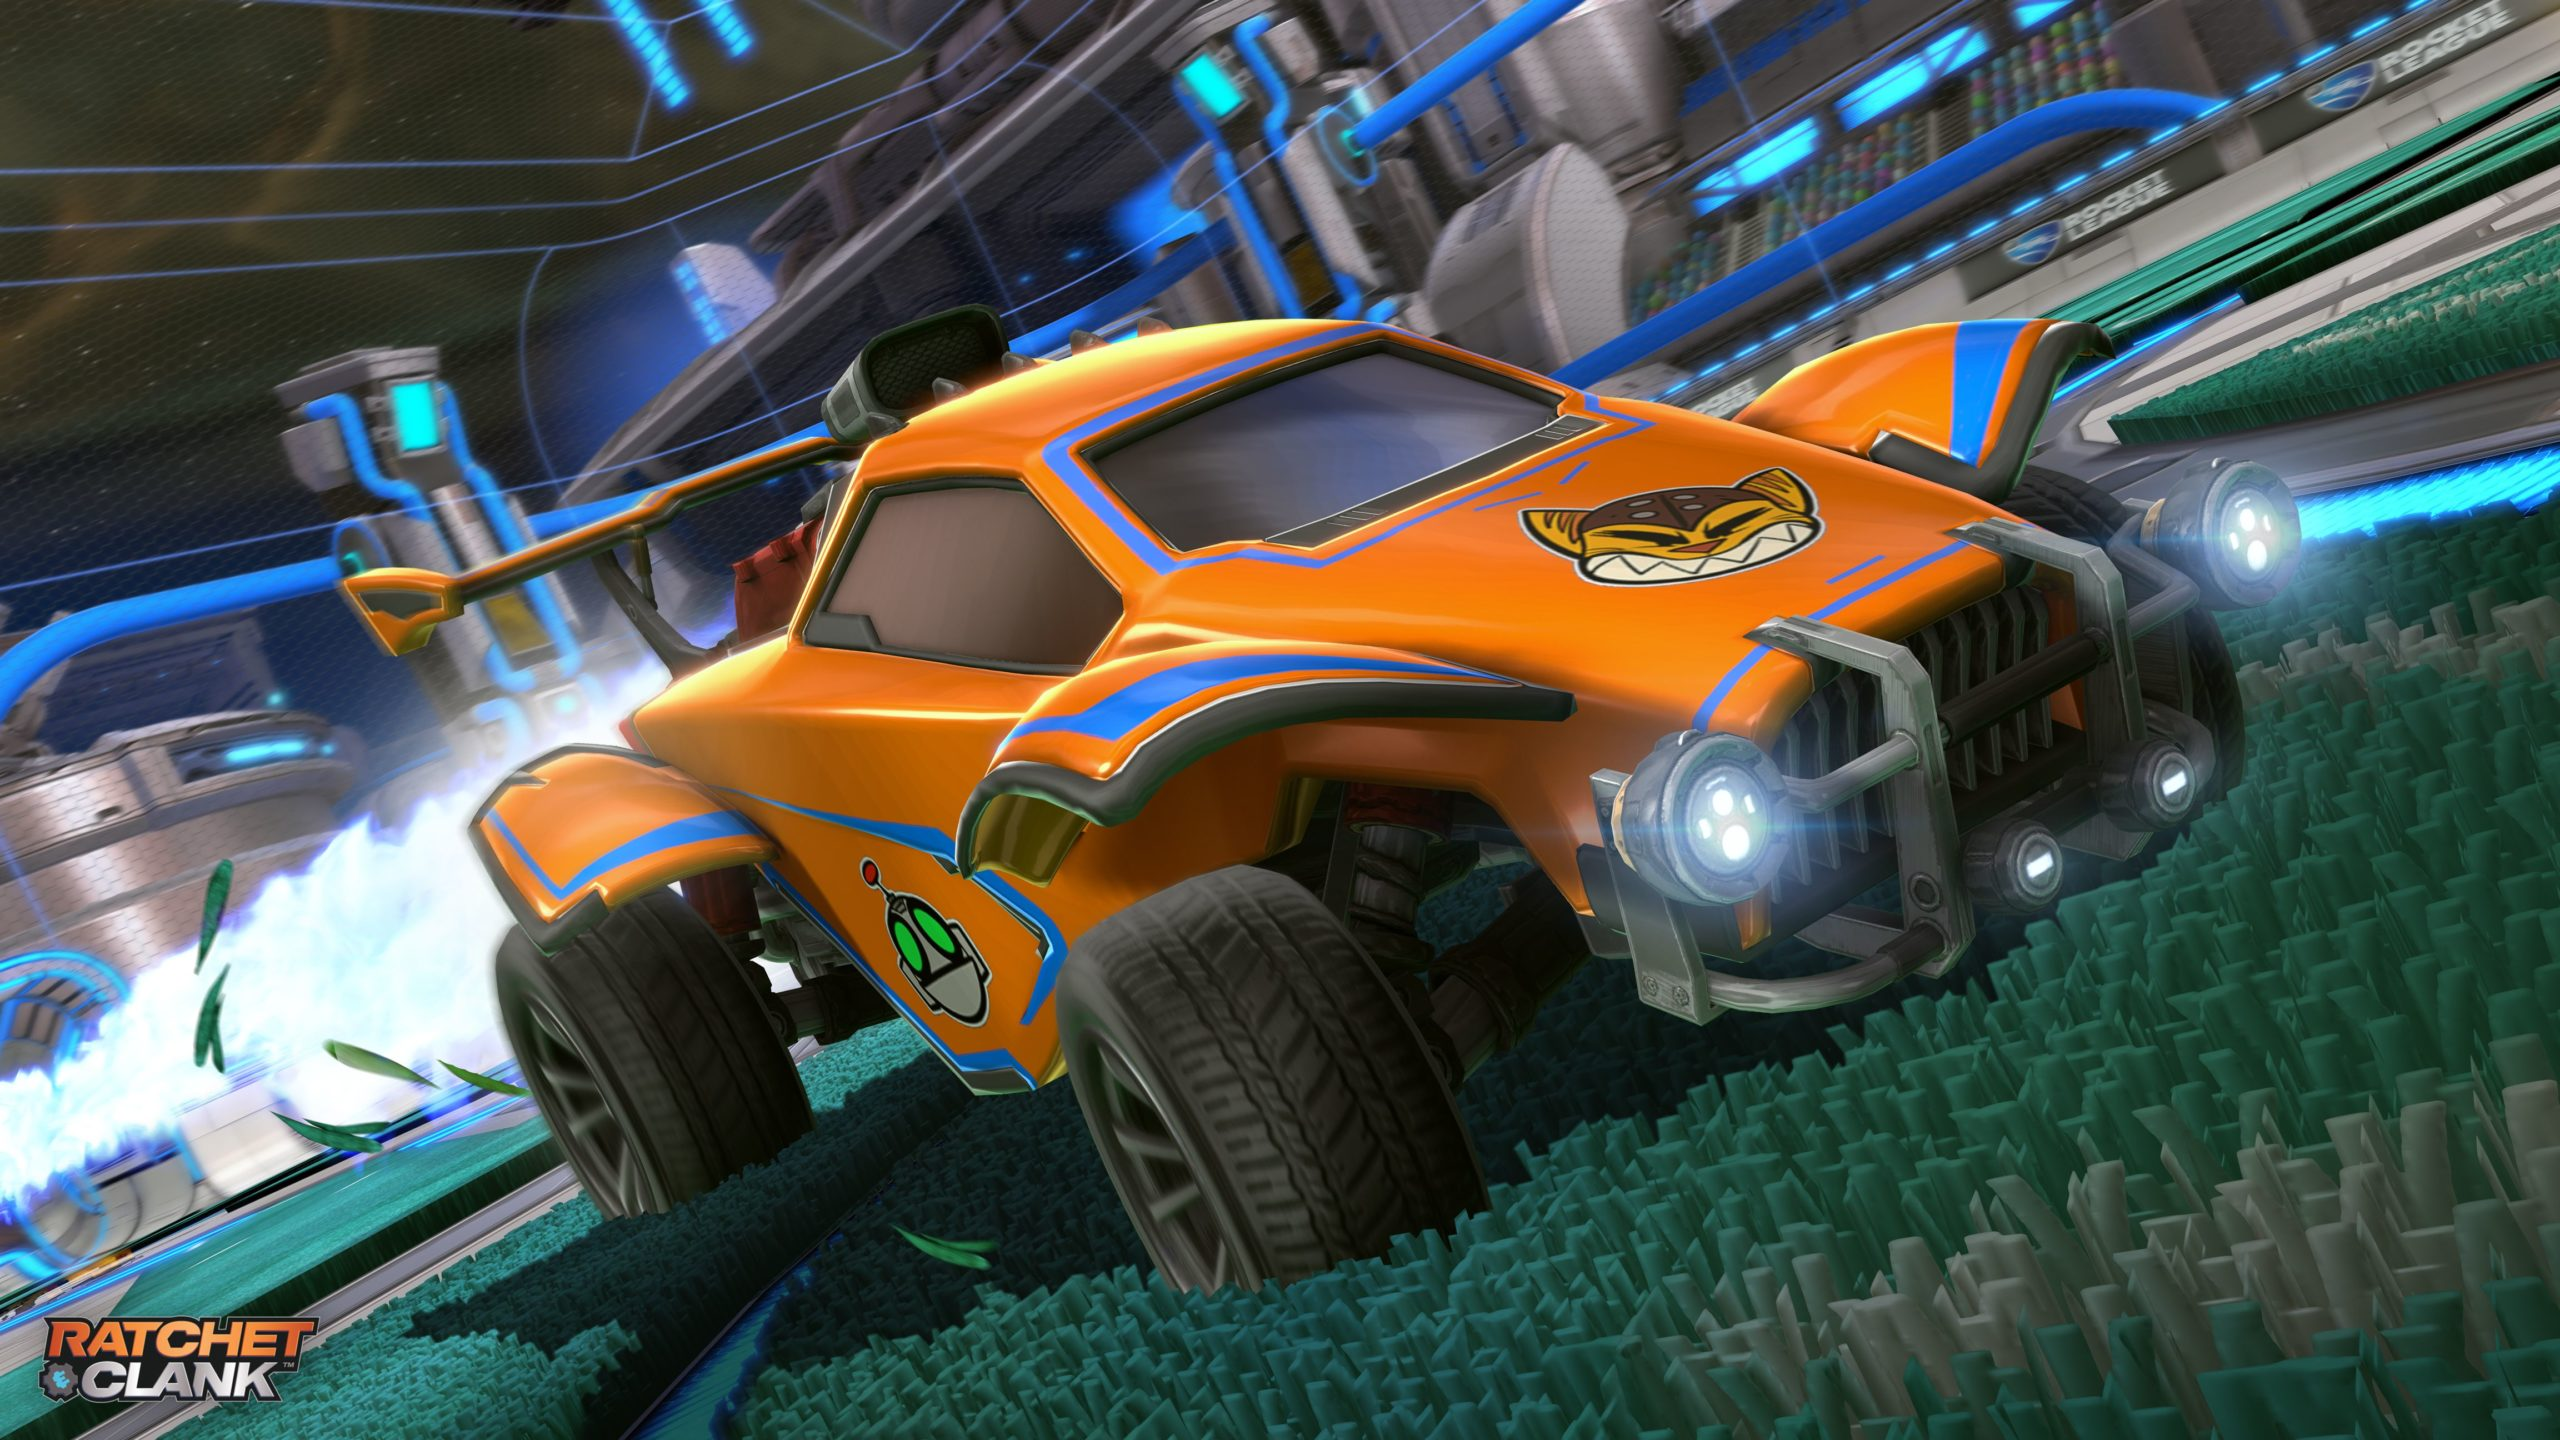 Free Ratchet and Clank Rocket League content available for PS5 owners today.